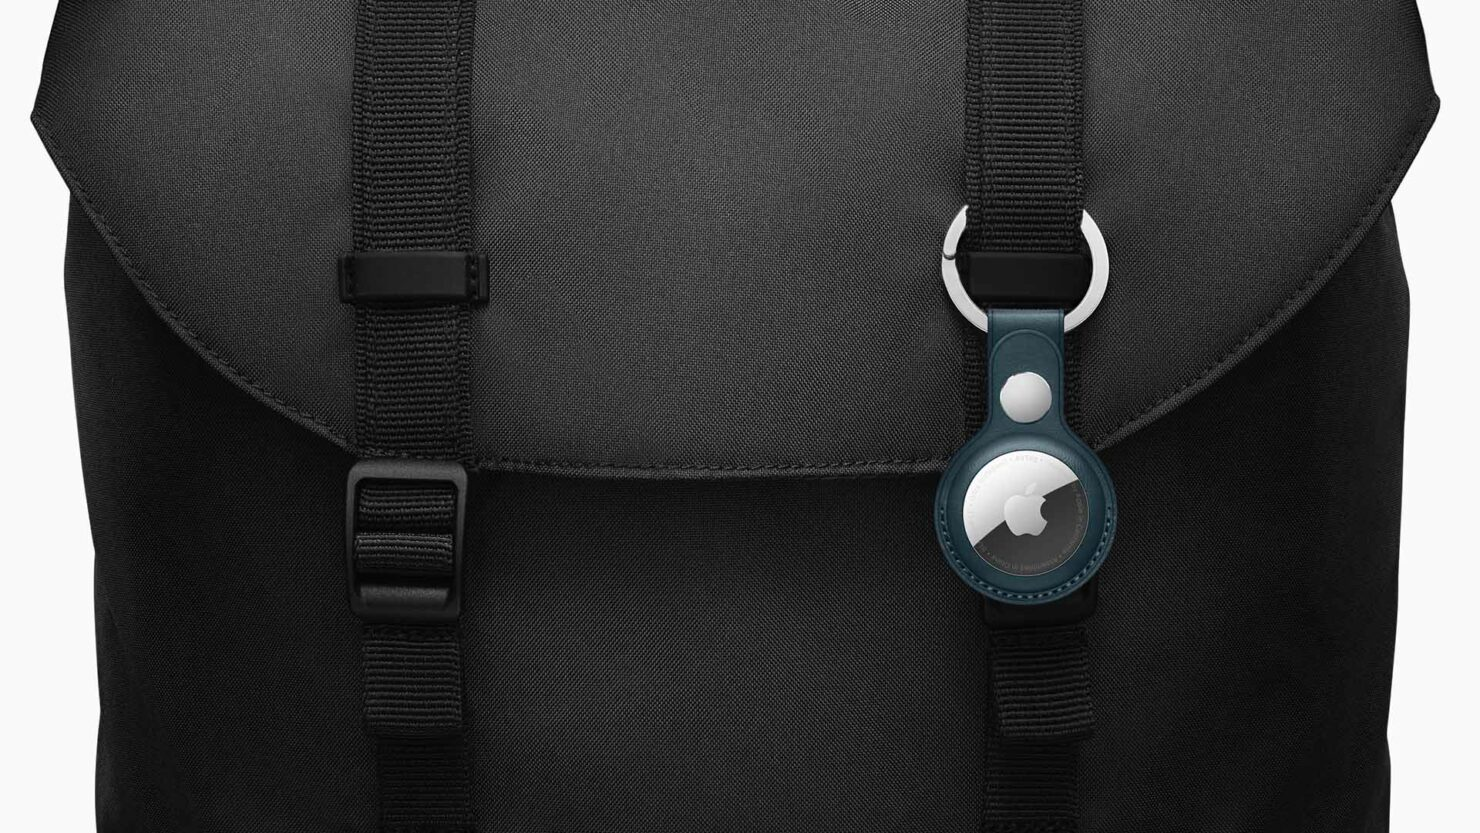 An Apple VP Says the AirTags Are Meant to Locate Lost Items, Not Children or Pets